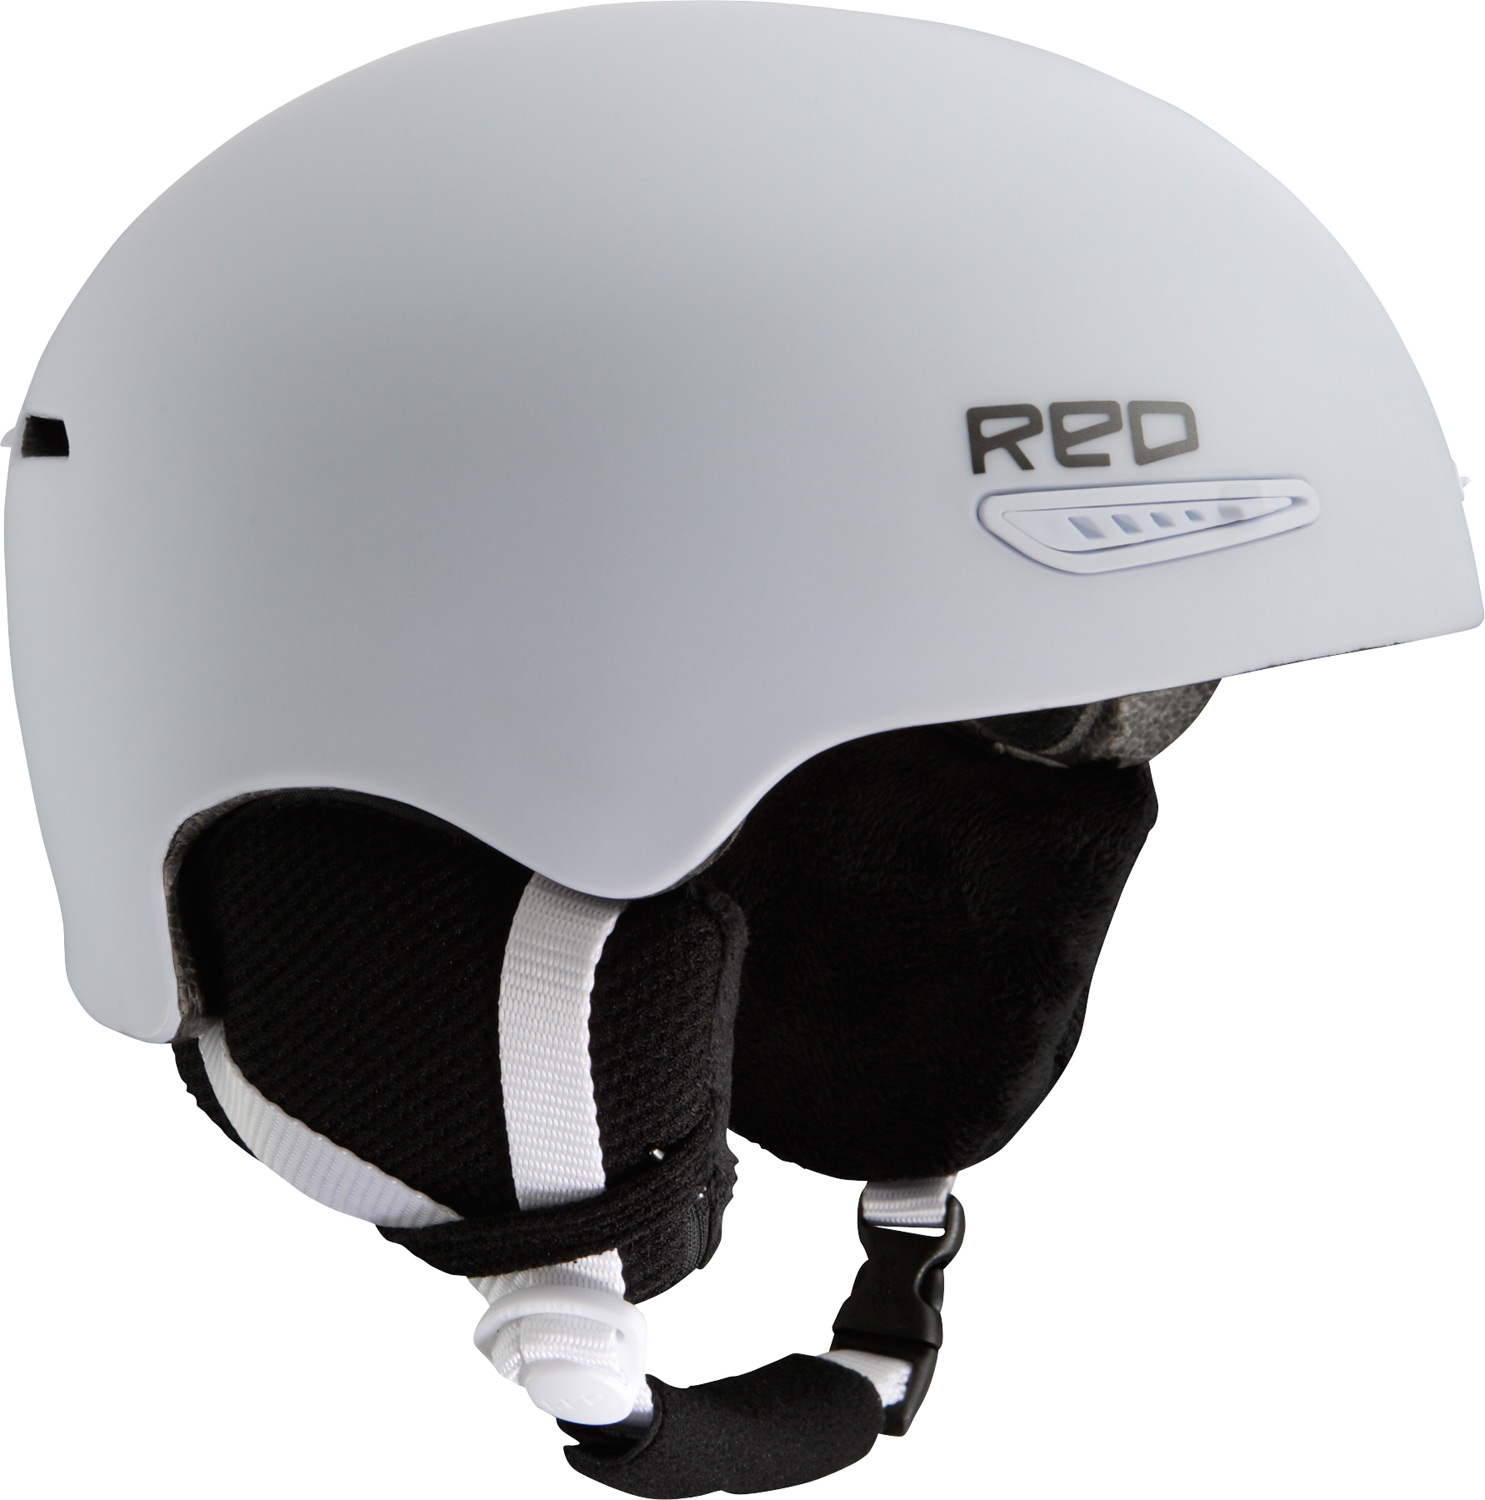 Snowboard Sophistication without the frills, the Red Pure snowboard helmet integrates our Air Pad Fit System and one-handed vent controls for fuss-free heat release. Clean, comfortable, lightweight.Key Features of the Red Pure Snowboard Helmet: Women's-Specific Design and Fit Ultra Lightweight In-Molded Polycarbonate Shell Air Pad Fit System Airvanced Ventilation Quick Clip II Ear Pads REDphones Audio Accessory Compatible Goggle Gasket ASTM 2040 and CE 1077B Certified - $55.95